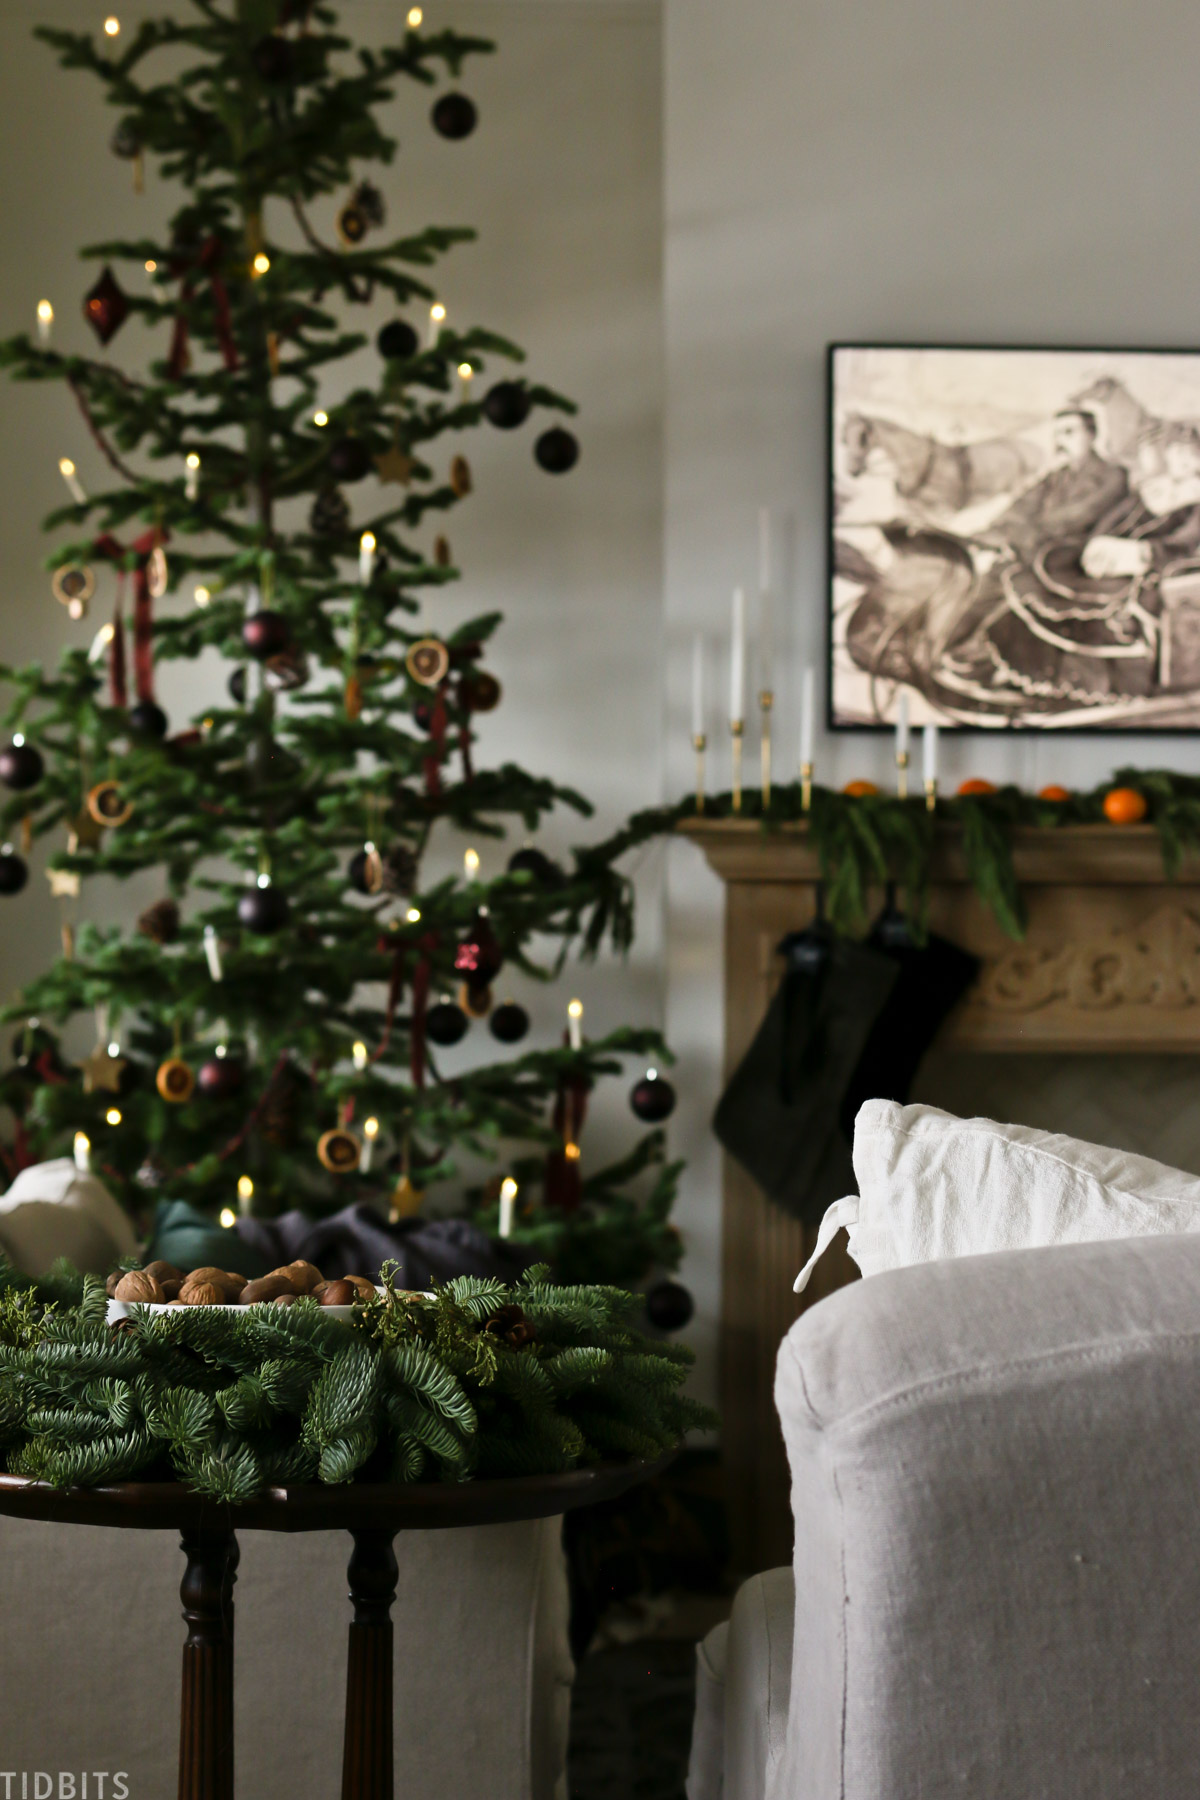 centerpiece that looks like a wreath is placed on side table next to couch with Christmas tree in background